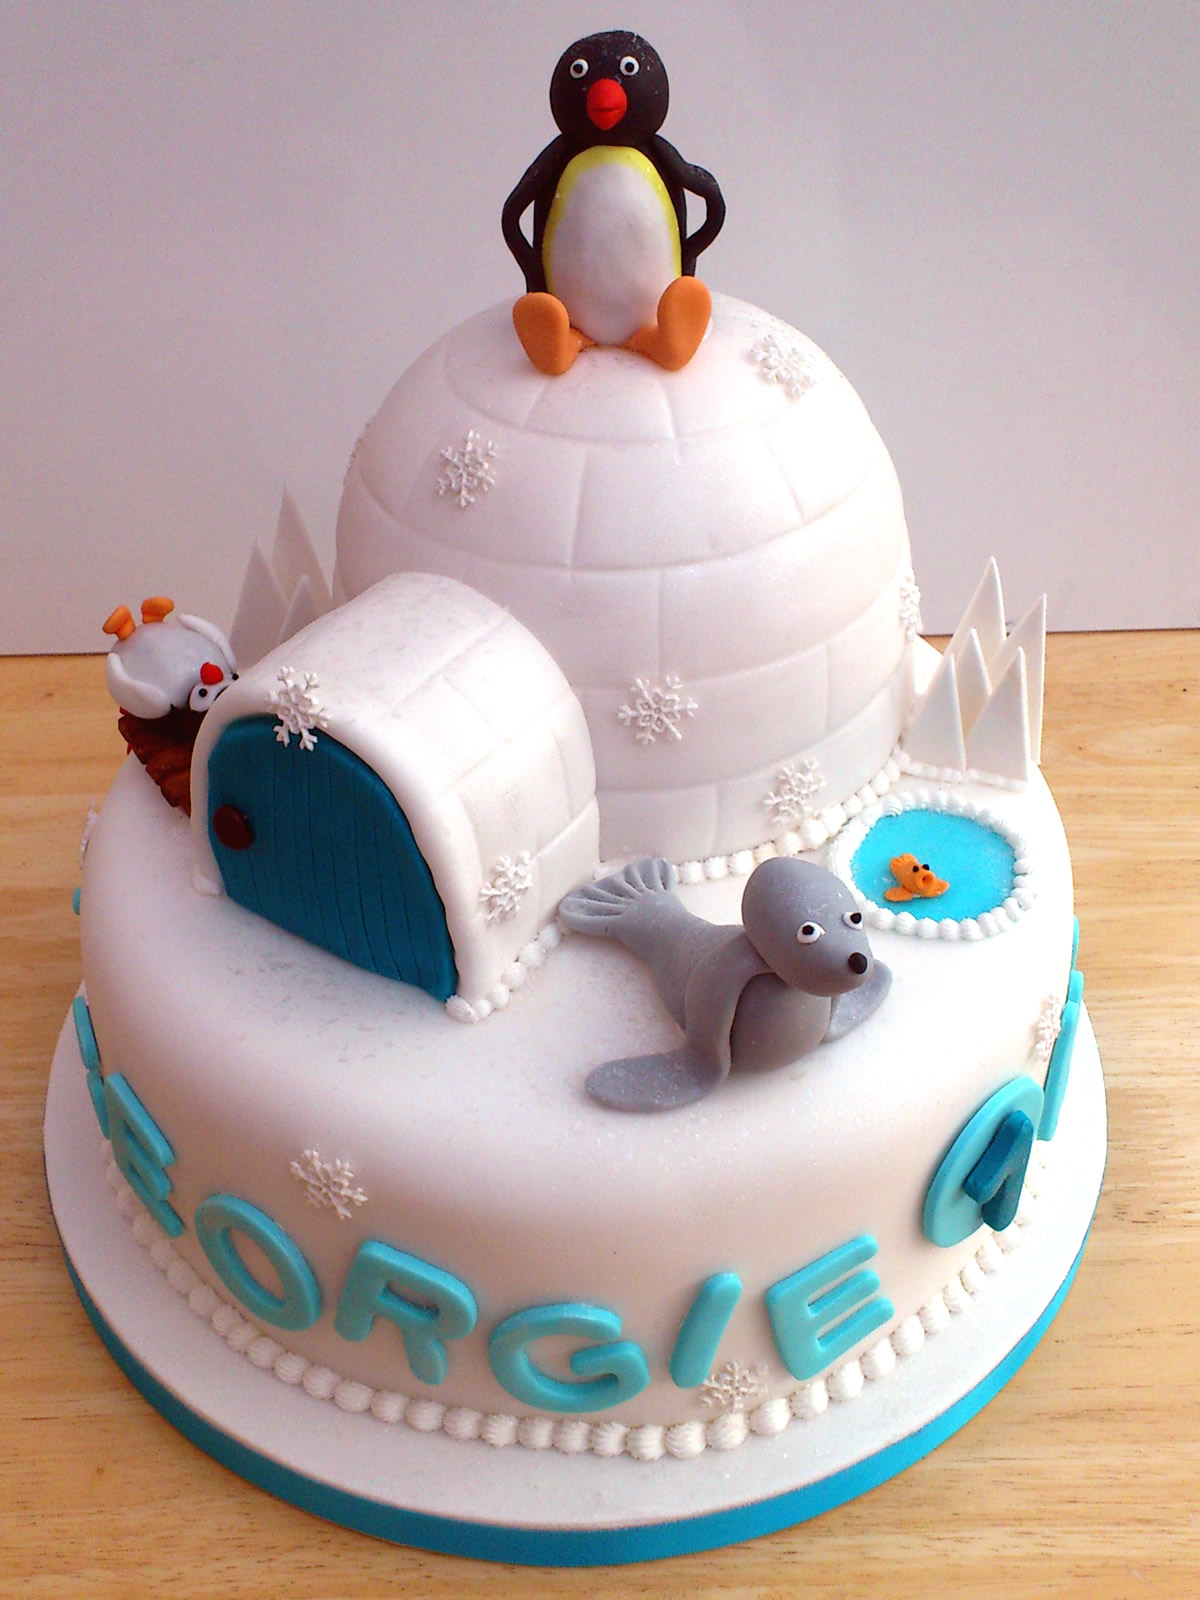 Novelty Cake Design Ideas : Pingu And Friends Novelty Birthday Cake   Susie s Cakes